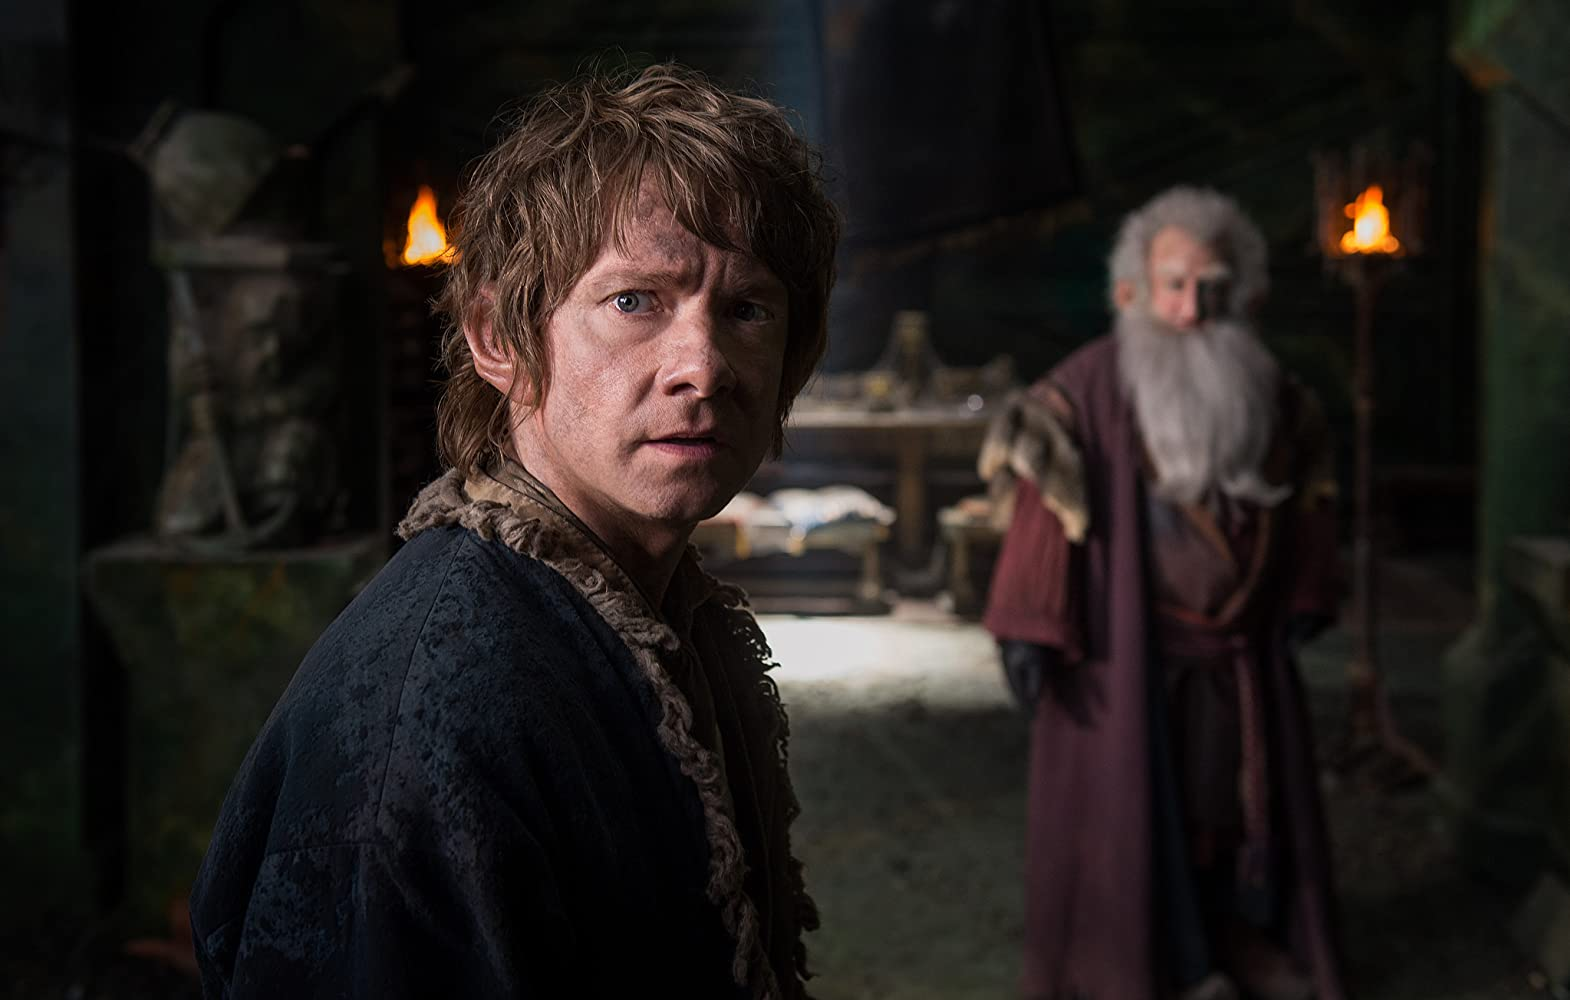 Martin Freeman and Ken Stott in The Hobbit: The Battle of the Five Armies (2014)